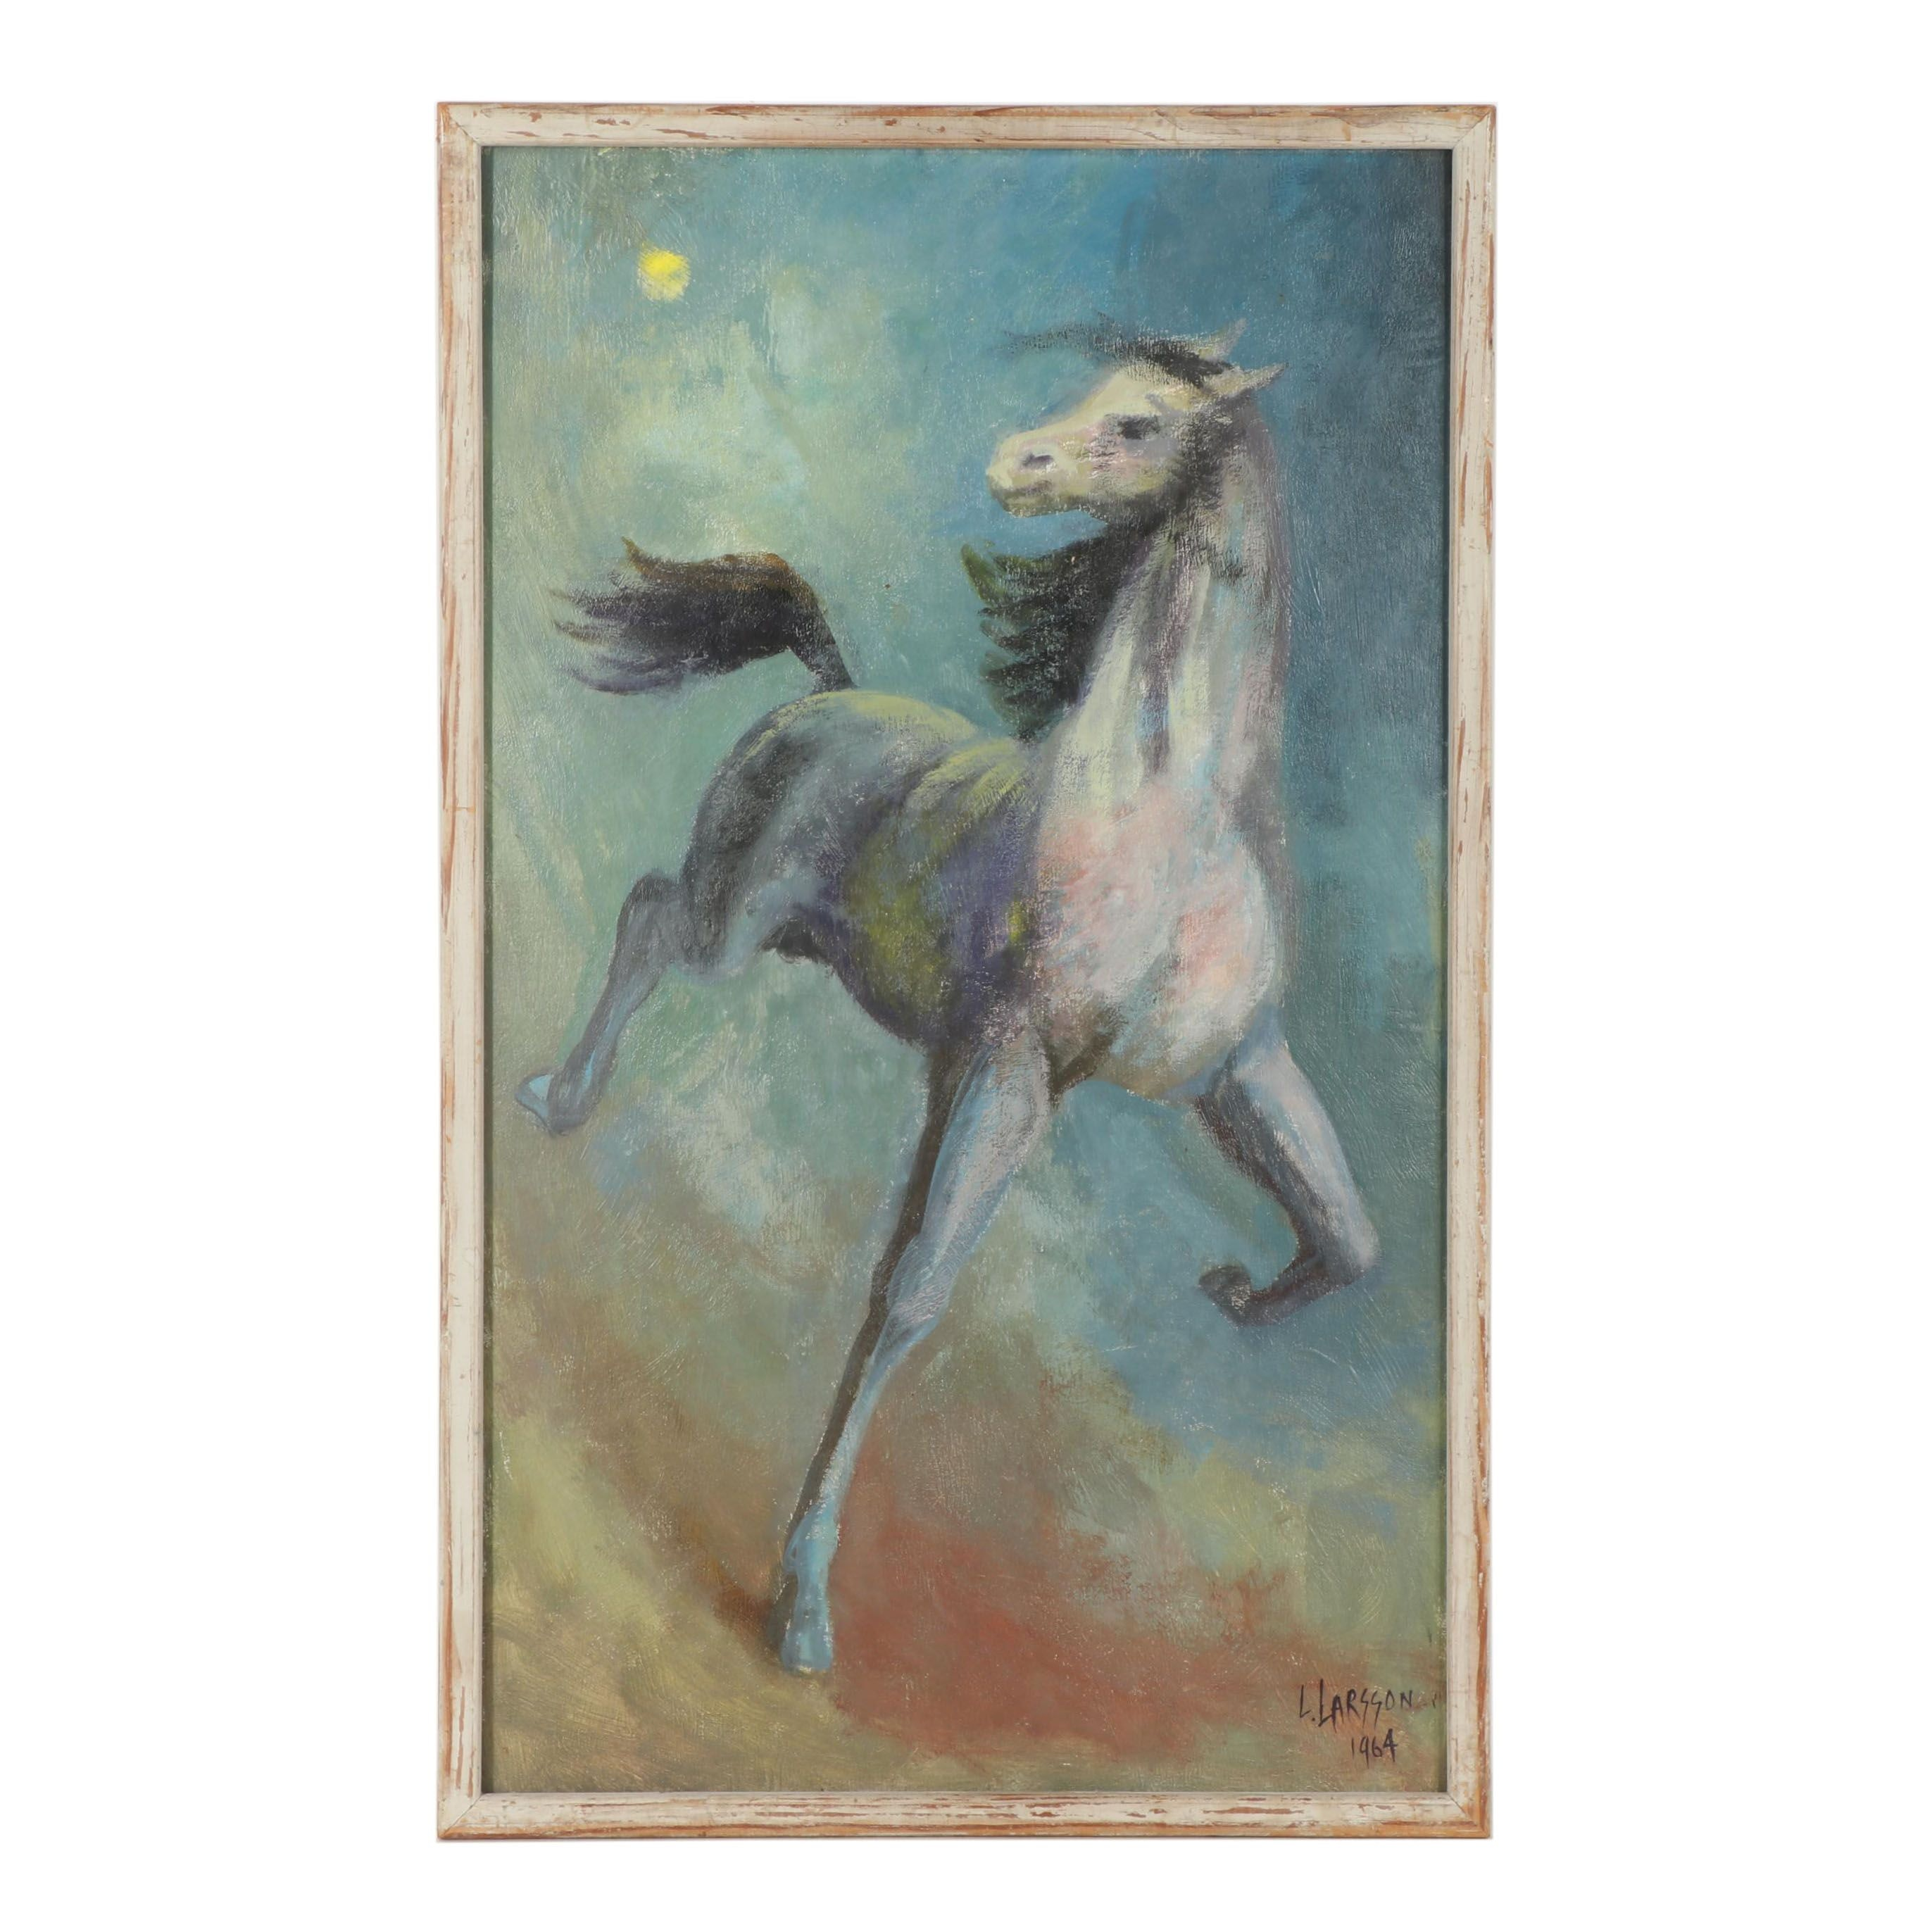 Leslie Larsson Oil Painting of Horse